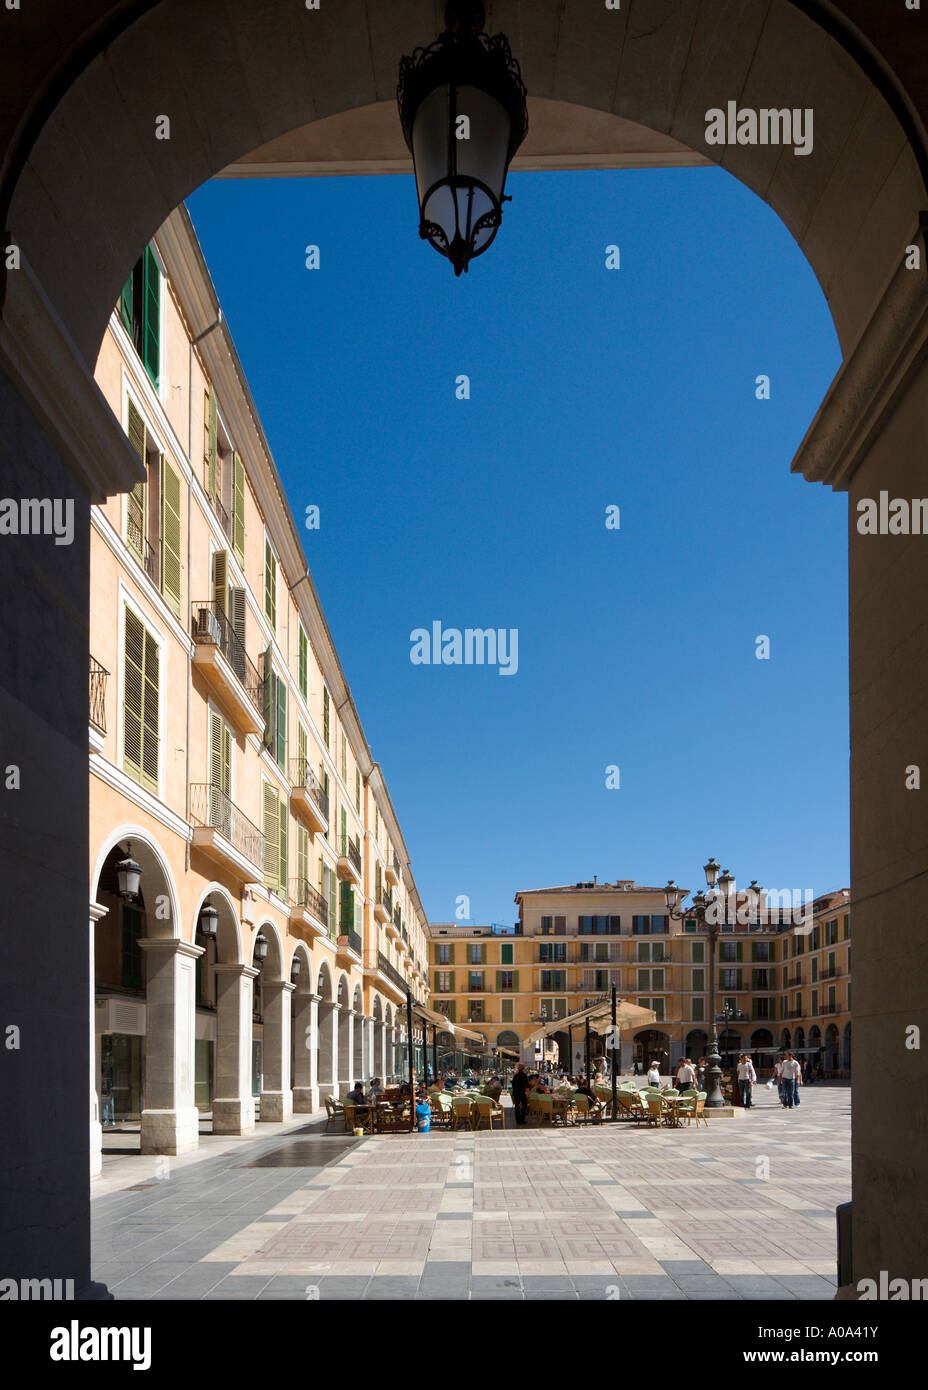 Plaza Mayor (Placa Major), Palma, Mallorca, Balearic Islands, Spain - Stock Image